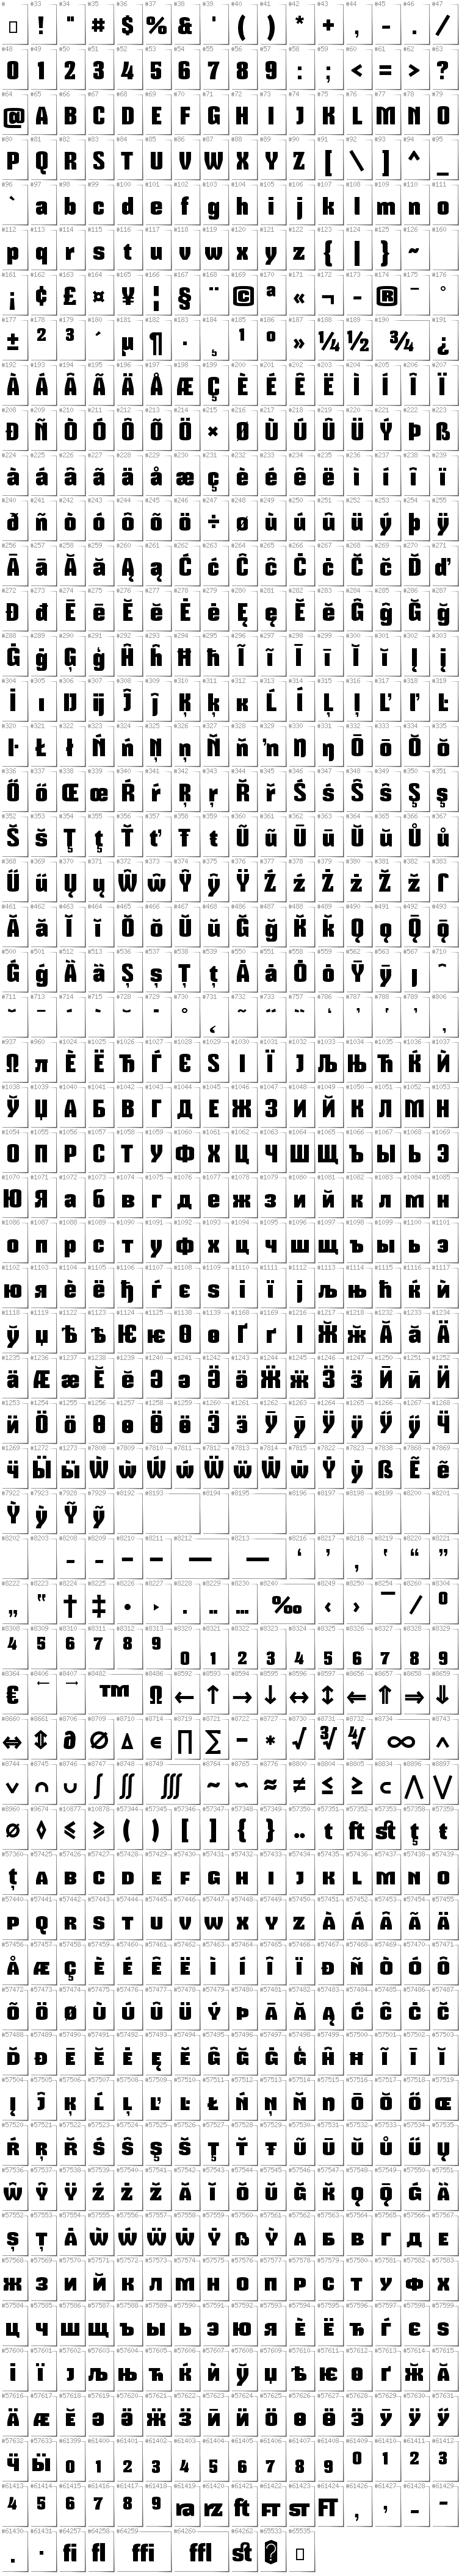 All glyphs in font Mikodacs